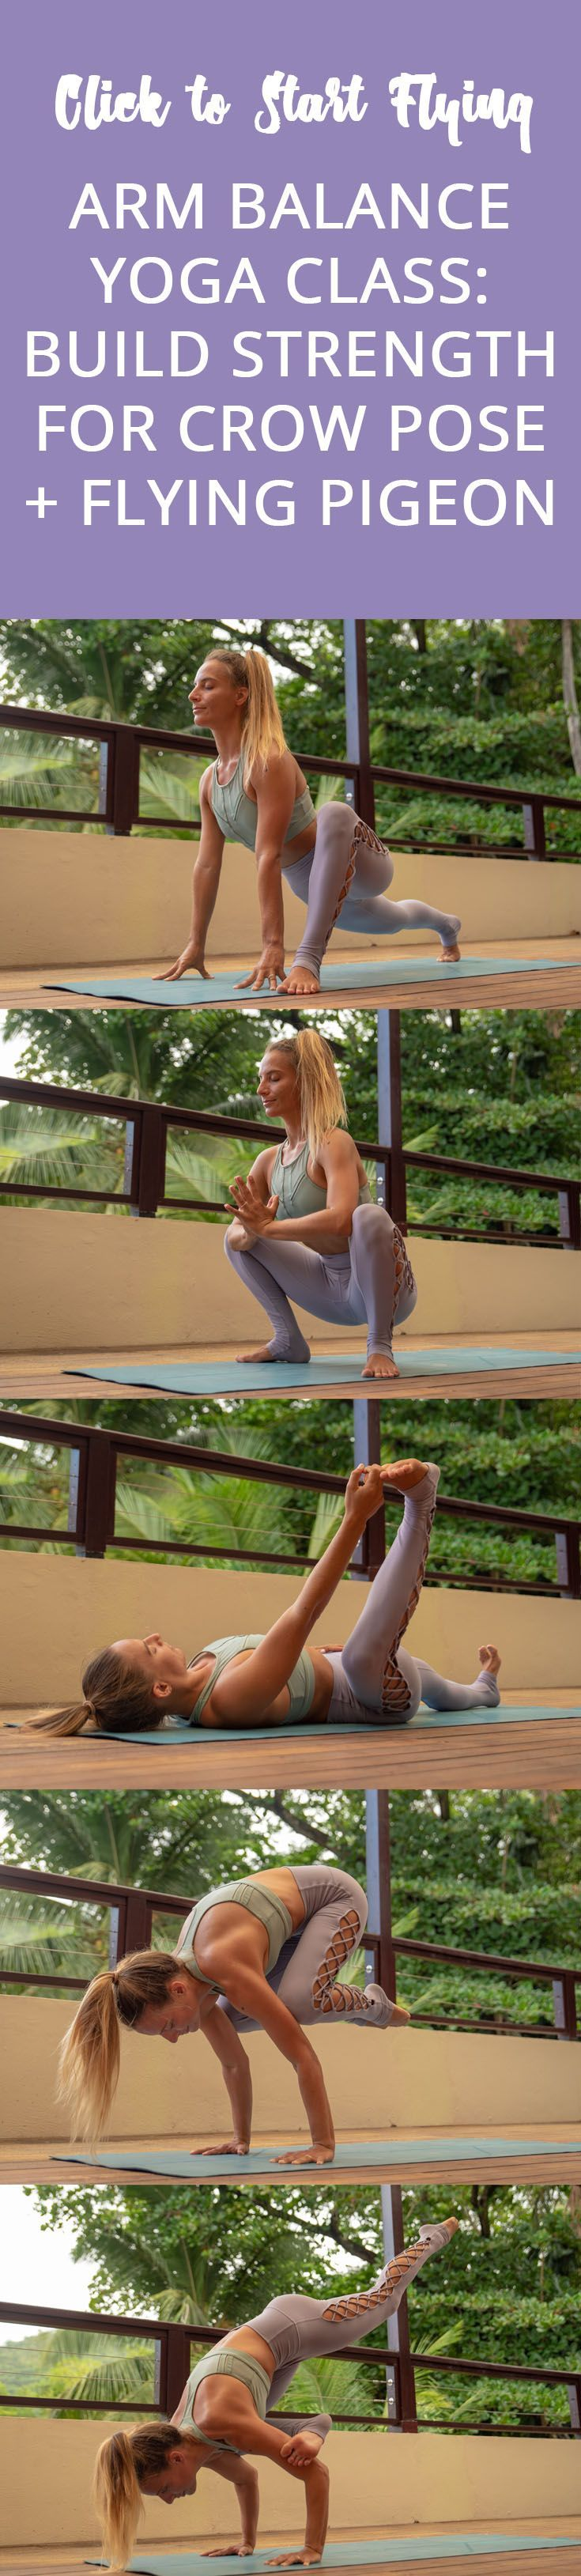 Arm Balance Yoga Class: Build Strength for Crow Pose & Flying Pigeon Pose - The ...